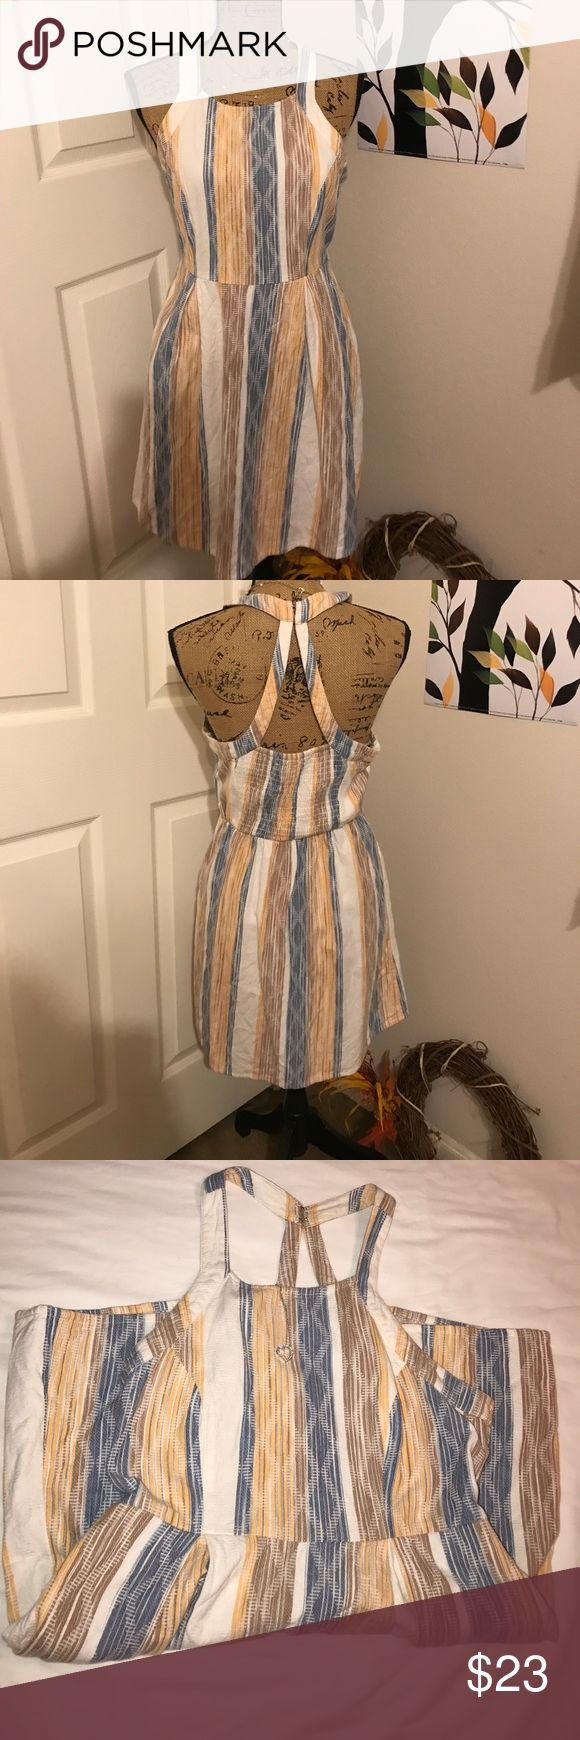 "O'NEILL Dress with pockets!!! Lovely O'NEILL Dress or used as a swim suit cover dress!!! with pockets!!!, Size L, Measures Arm Pit to Arm Pit 17"" Arm Pit to Bottom of Dress 24"" O'Neill Dresses"